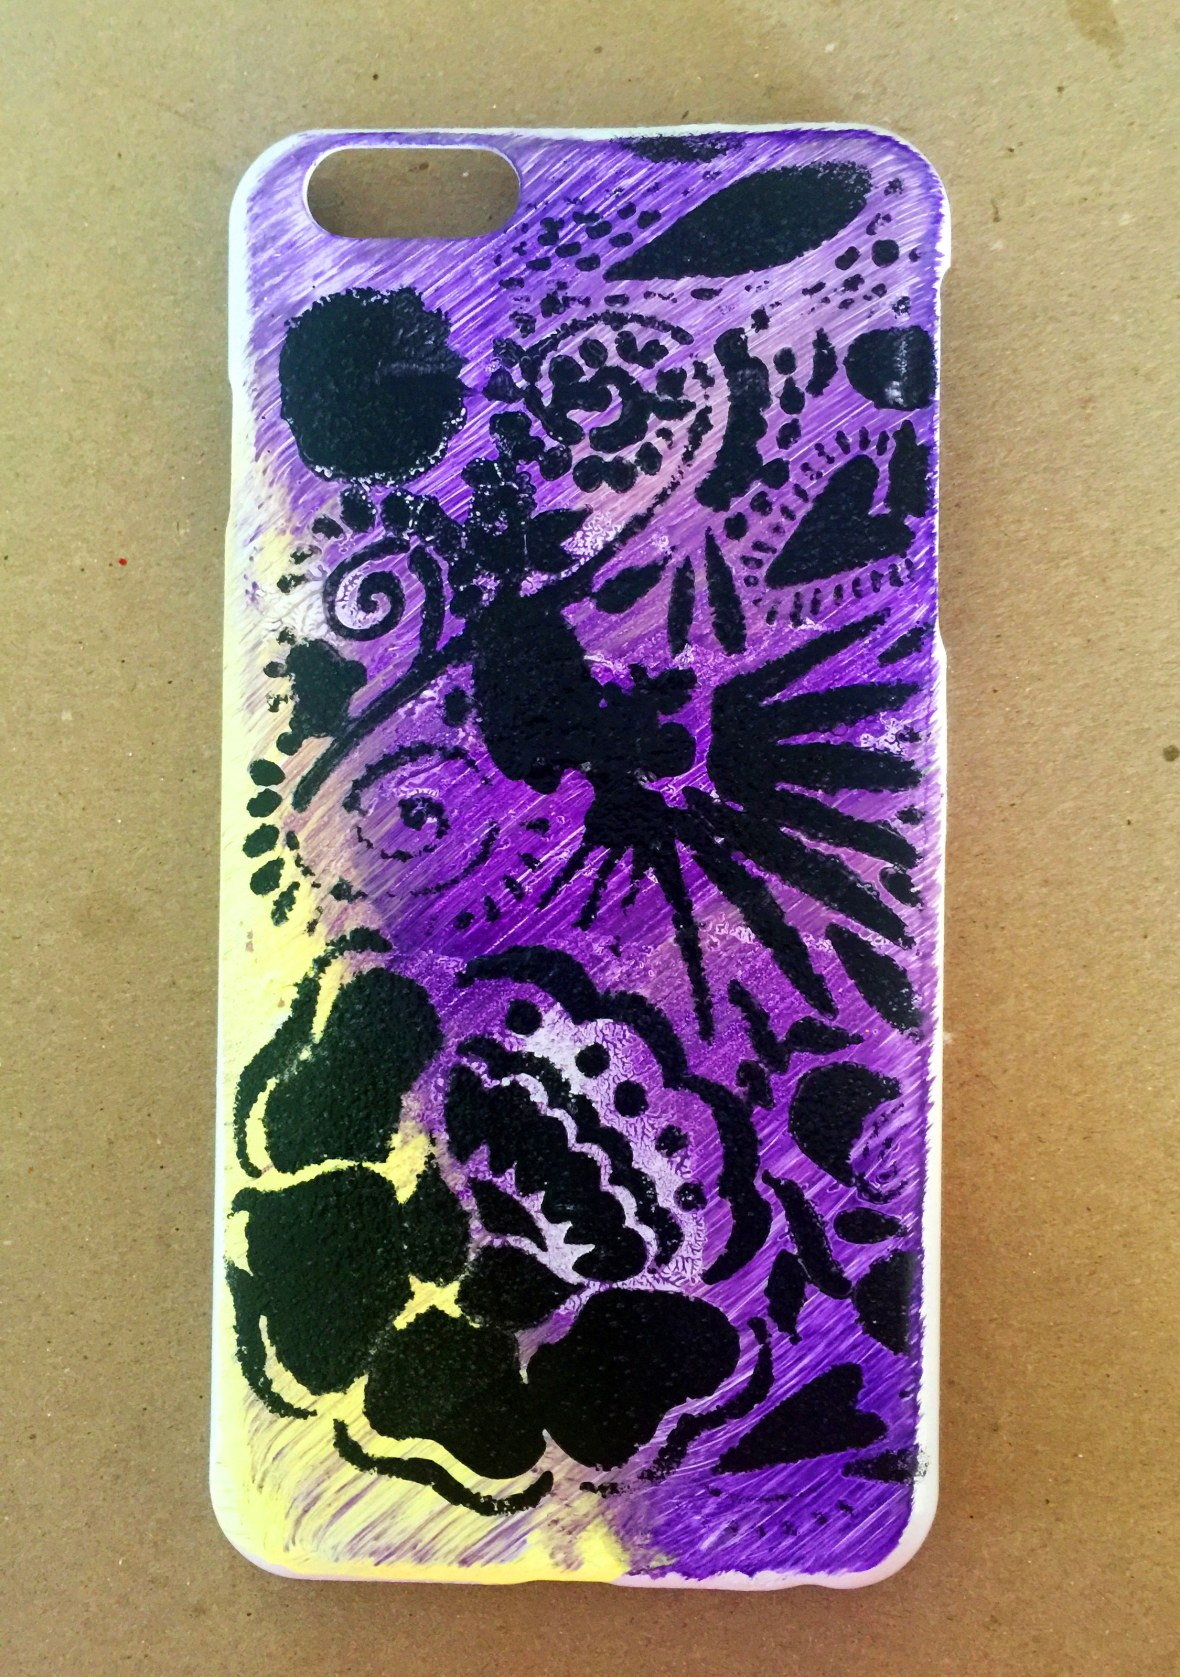 Stenciled phone case using primer, gesso, paint and gloss